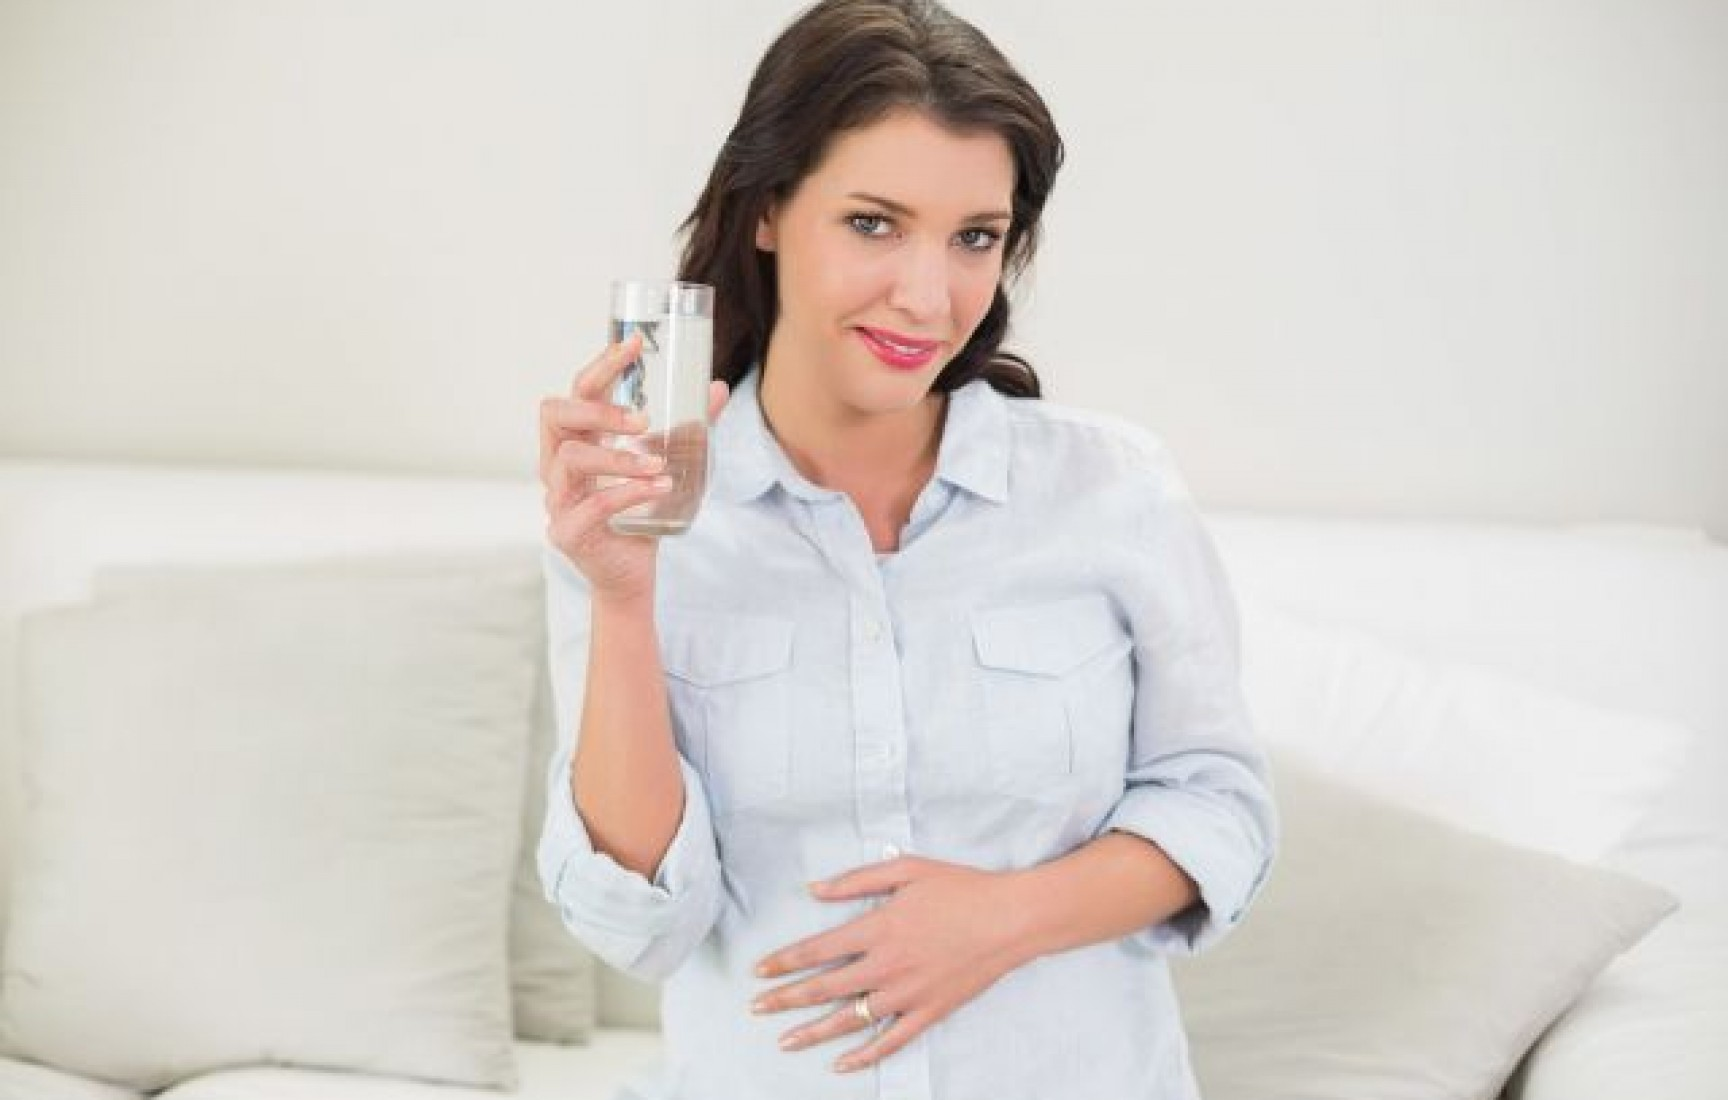 Drink ample water during pregnancy!